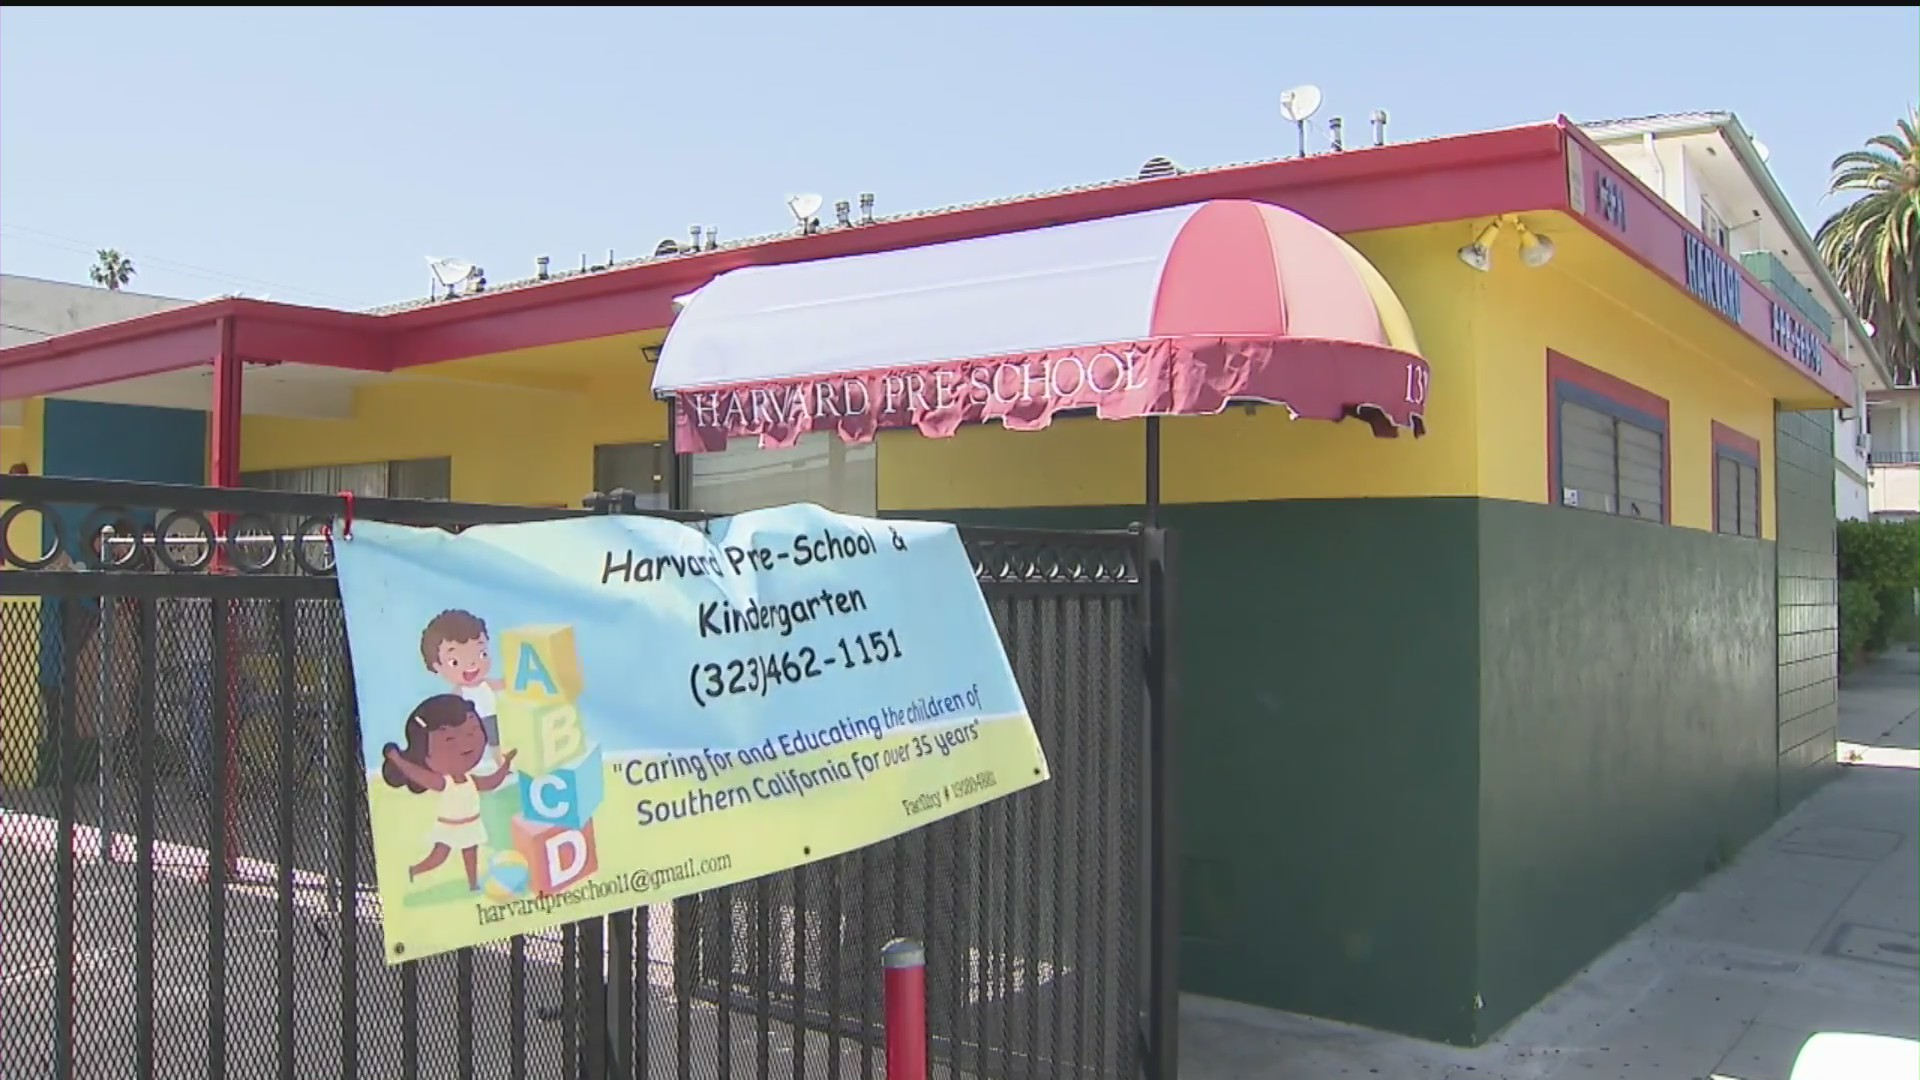 Harvard preschool in Hollywood, pictured on May 24, 2020. (KTLA)